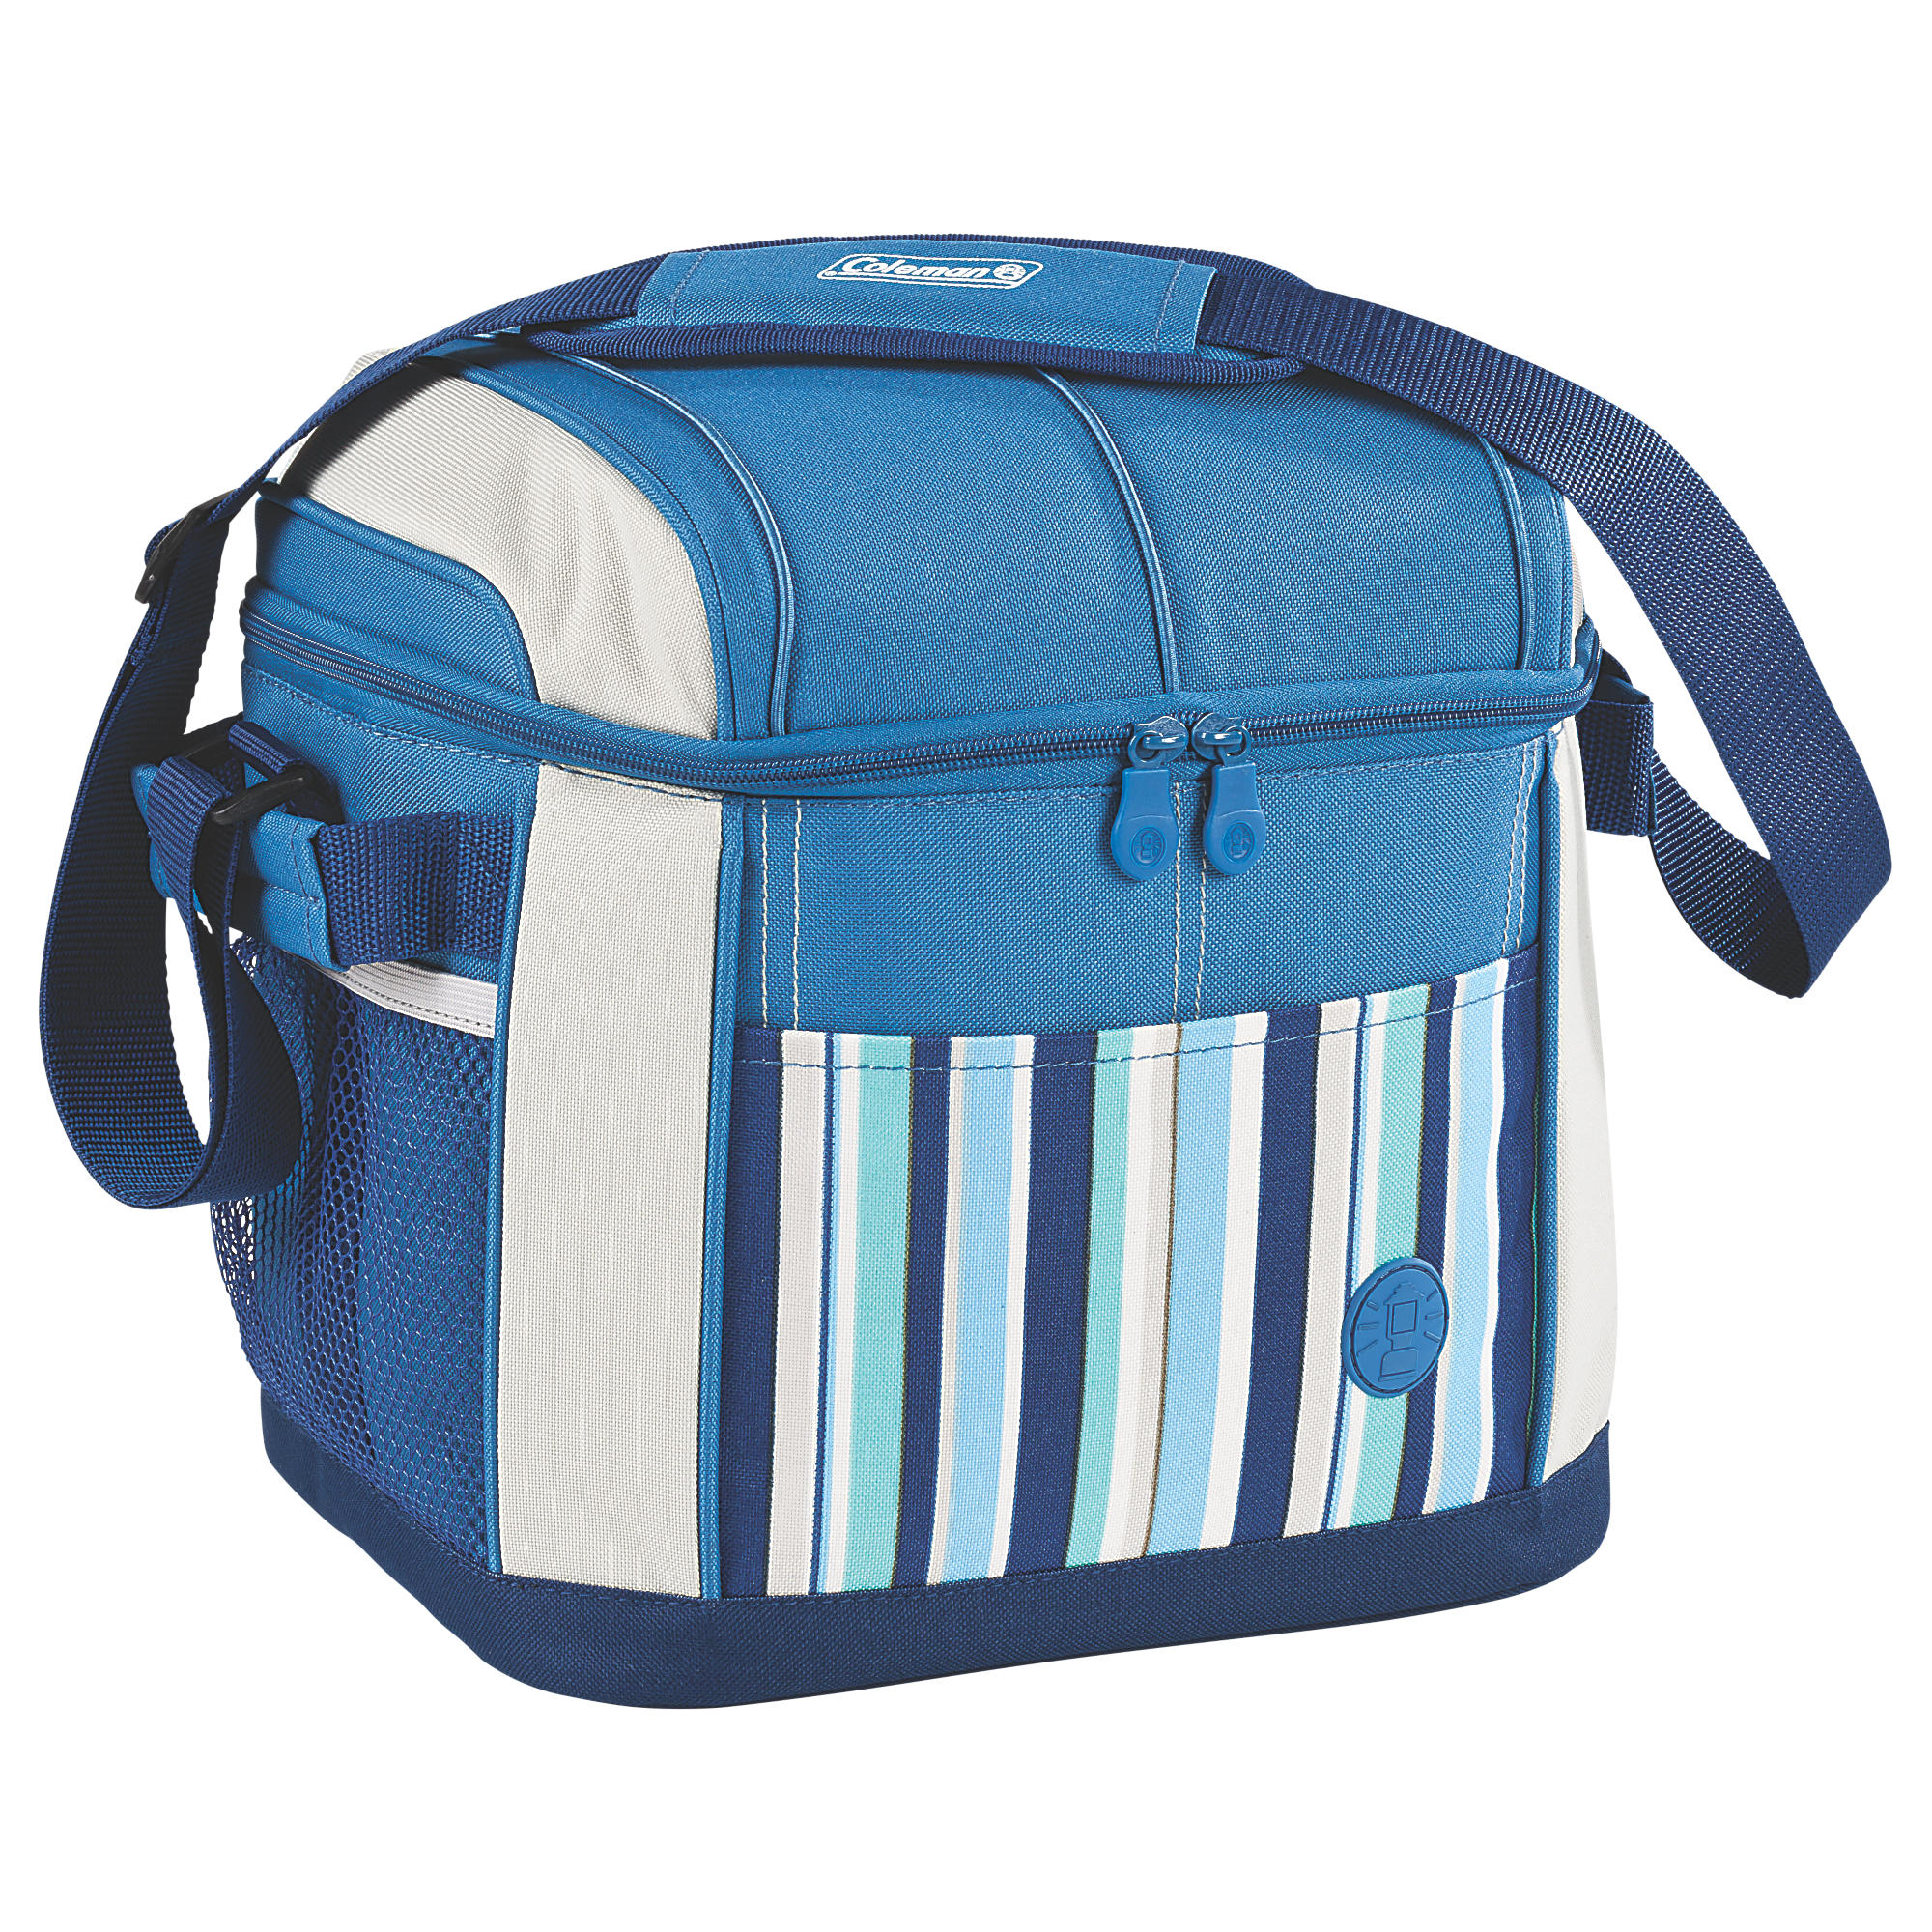 Striped Cooler